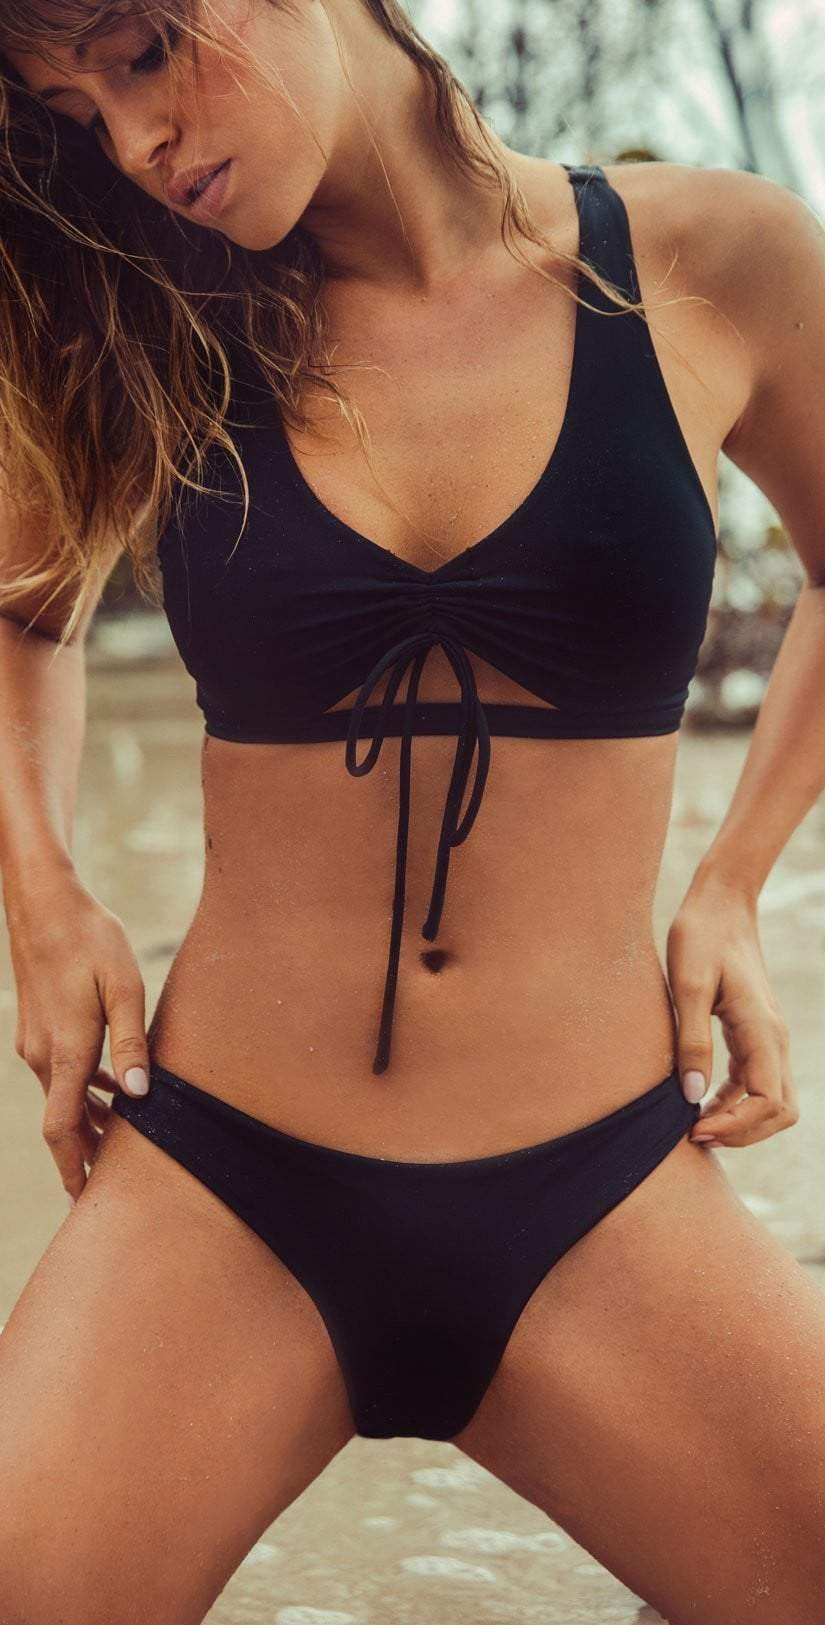 Peixoto Bahia Beach Bikini Bottom in Black 21806-S46: